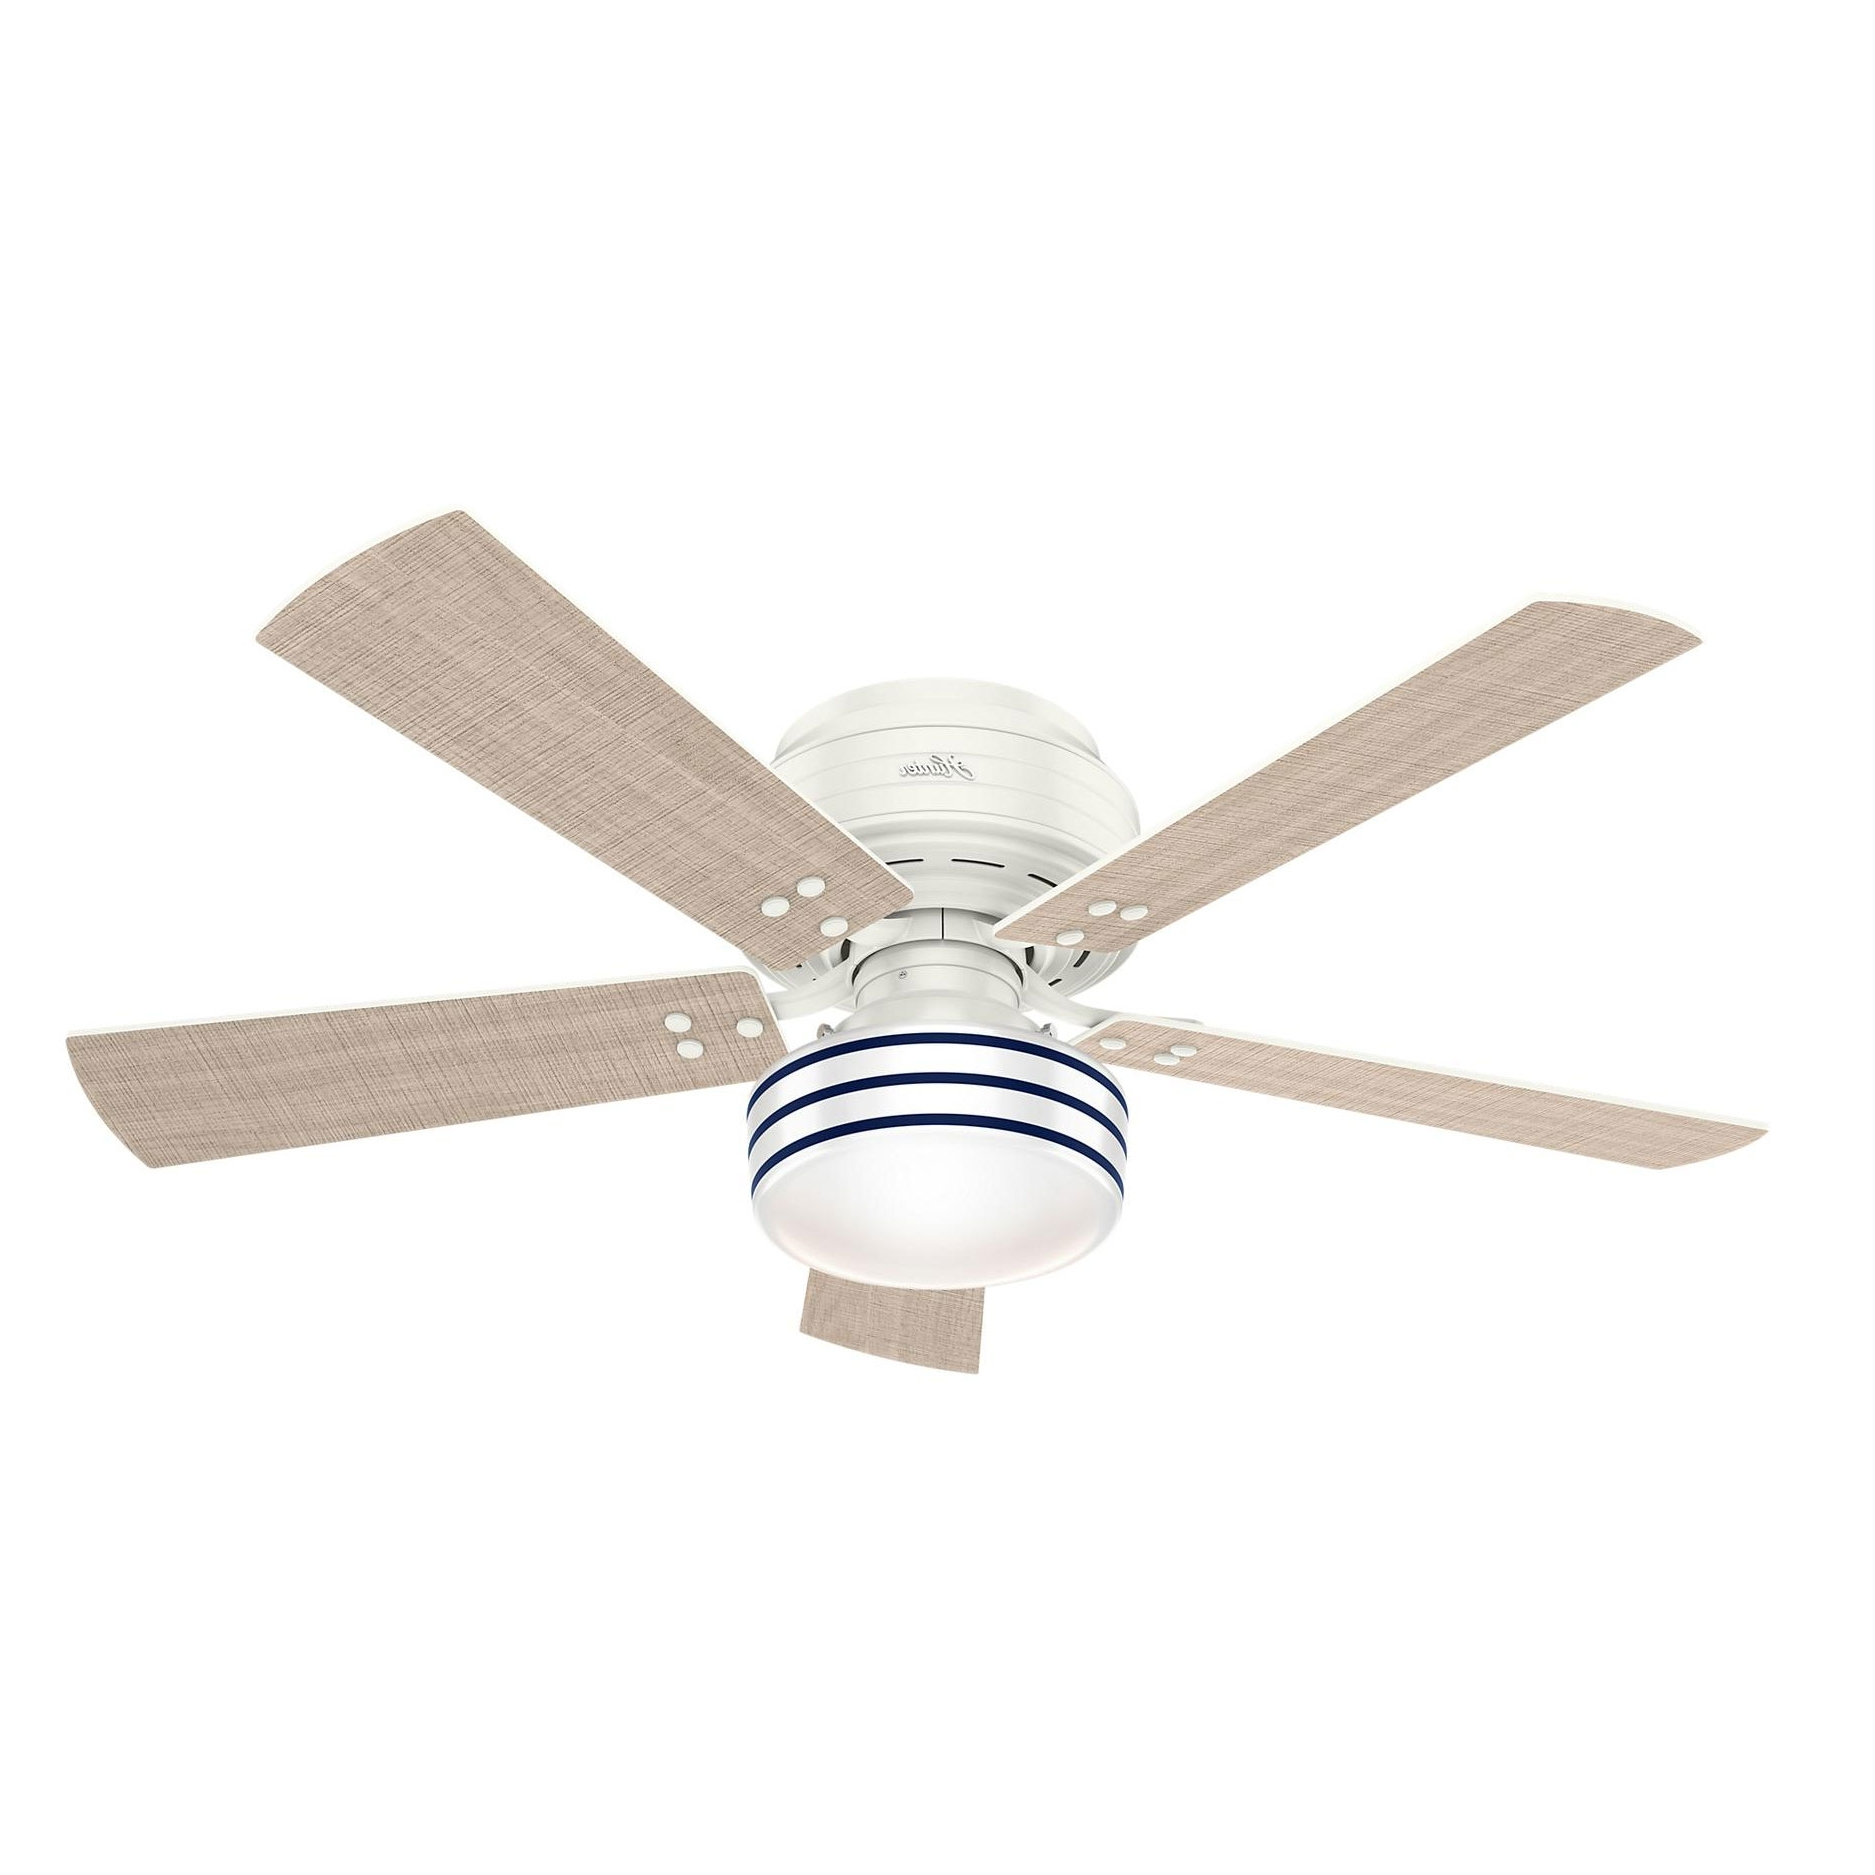 Cedar Key Low Profile Indoor/outdoor Ceiling Fan With Light Within Most Popular Hunter Indoor Outdoor Ceiling Fans With Lights (View 2 of 20)